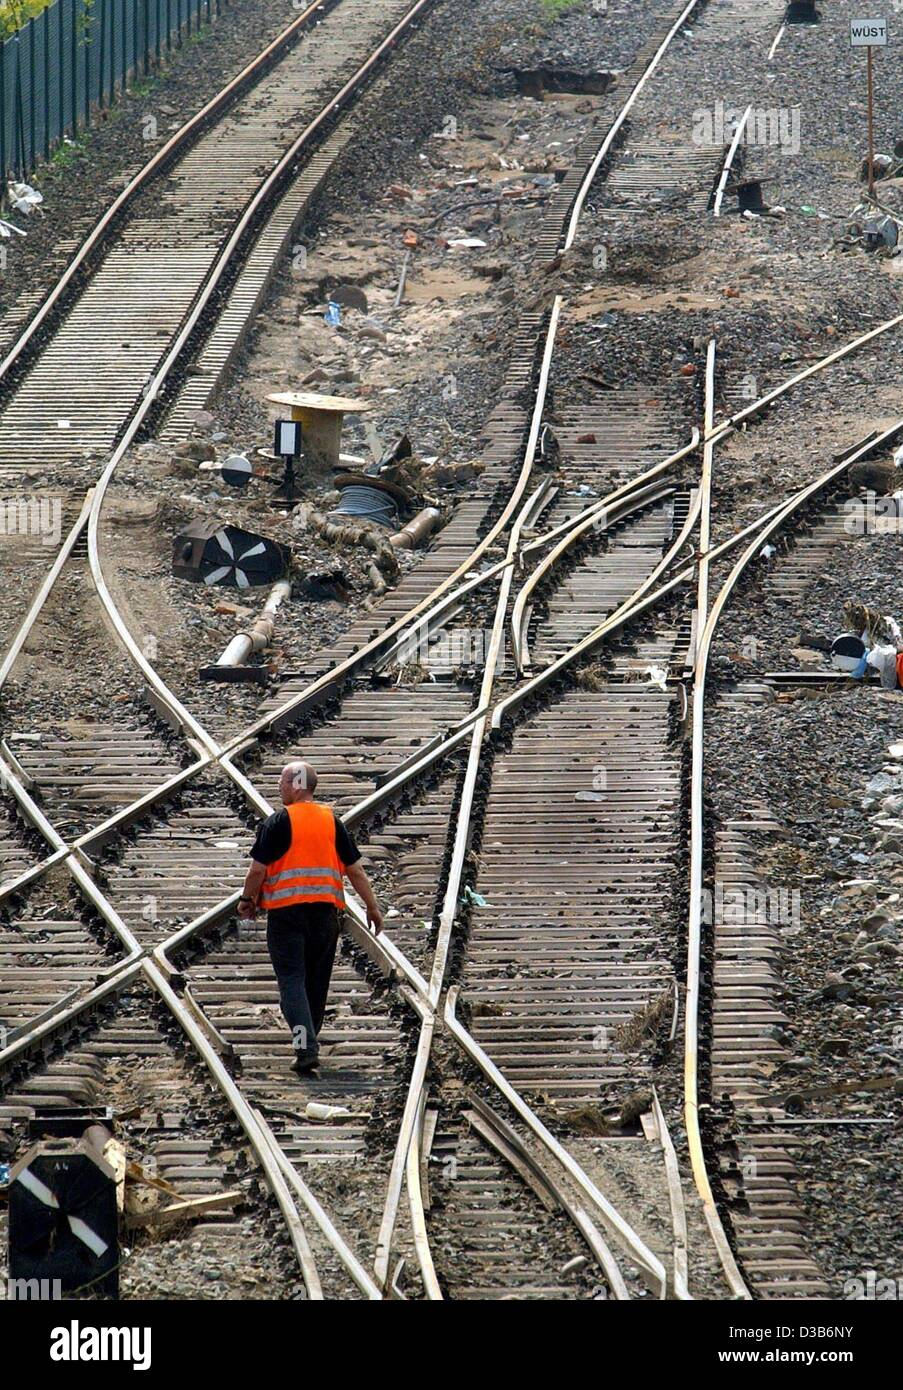 (dpa) - A worker walks over the sleepers of a railroad track devastated by the recent floods near Dresden, Germany, - Stock Image